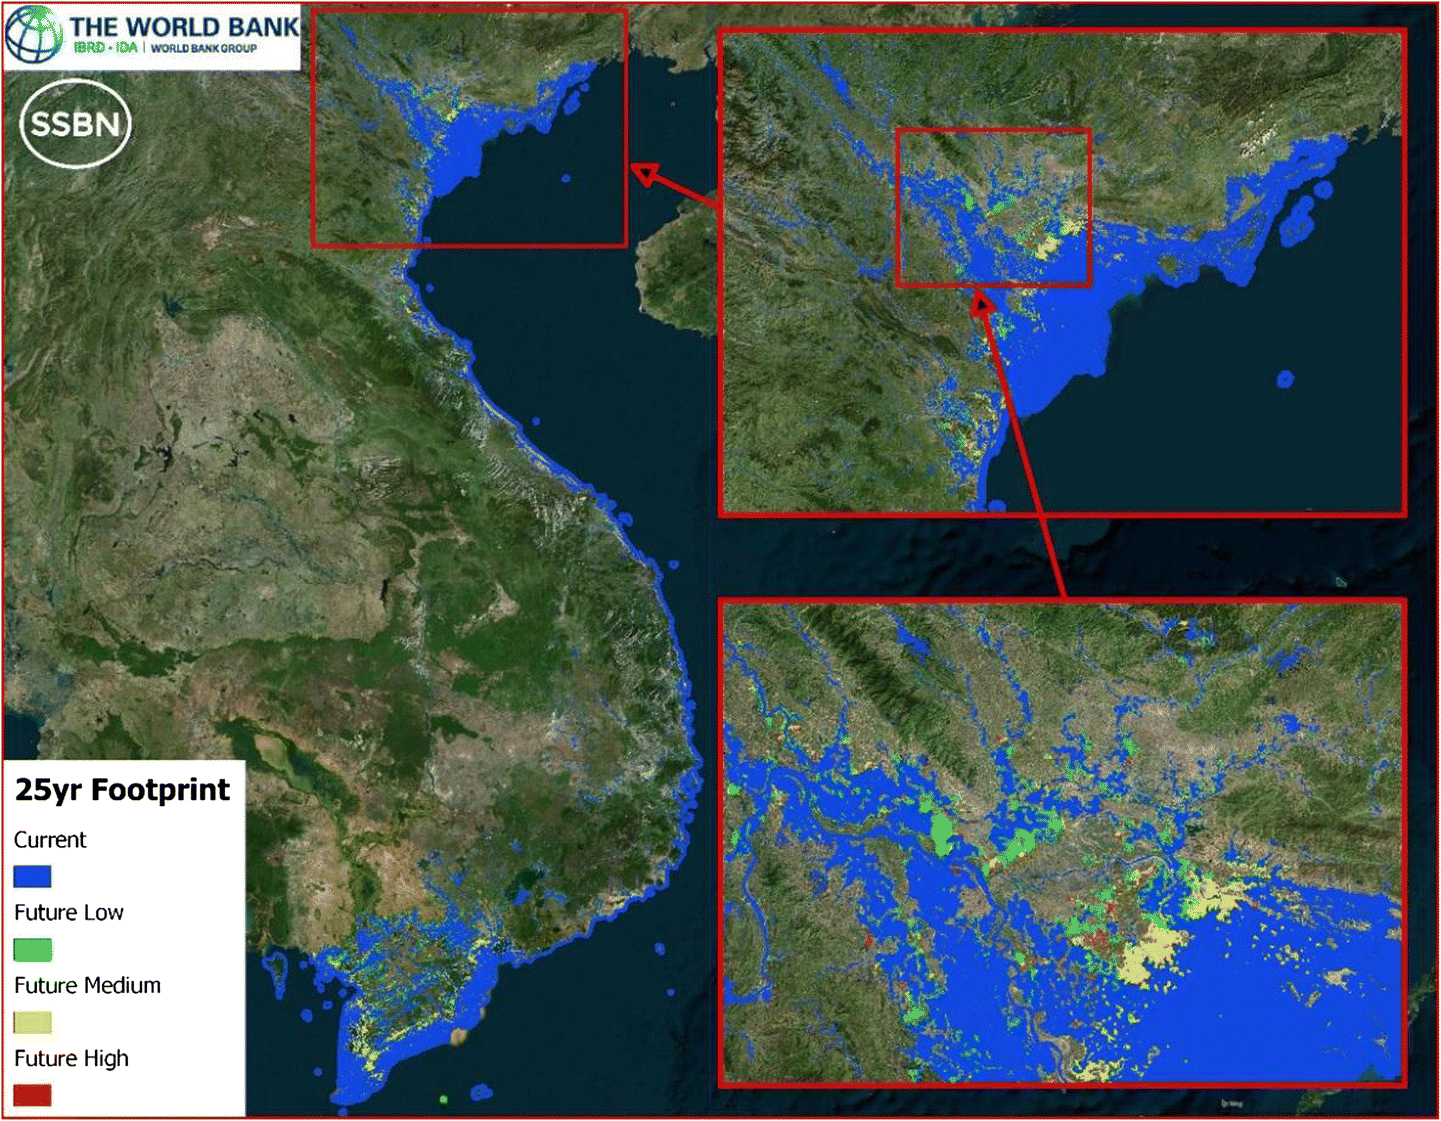 Exposure to Floods, Climate Change, and Poverty in Vietnam ... on world ground motion map, world map displaying common volcano locations, world blowing up, world airport codes, world as one, world earthquake map, dolphin world map, world deforestation statistics, u.s. railroad map, world fog map, world warrior map, johnson world map, world hail map, world map after doomsday, world pacific rim map, world covered in water, world water distribution, world beautiful women, flooded world map,